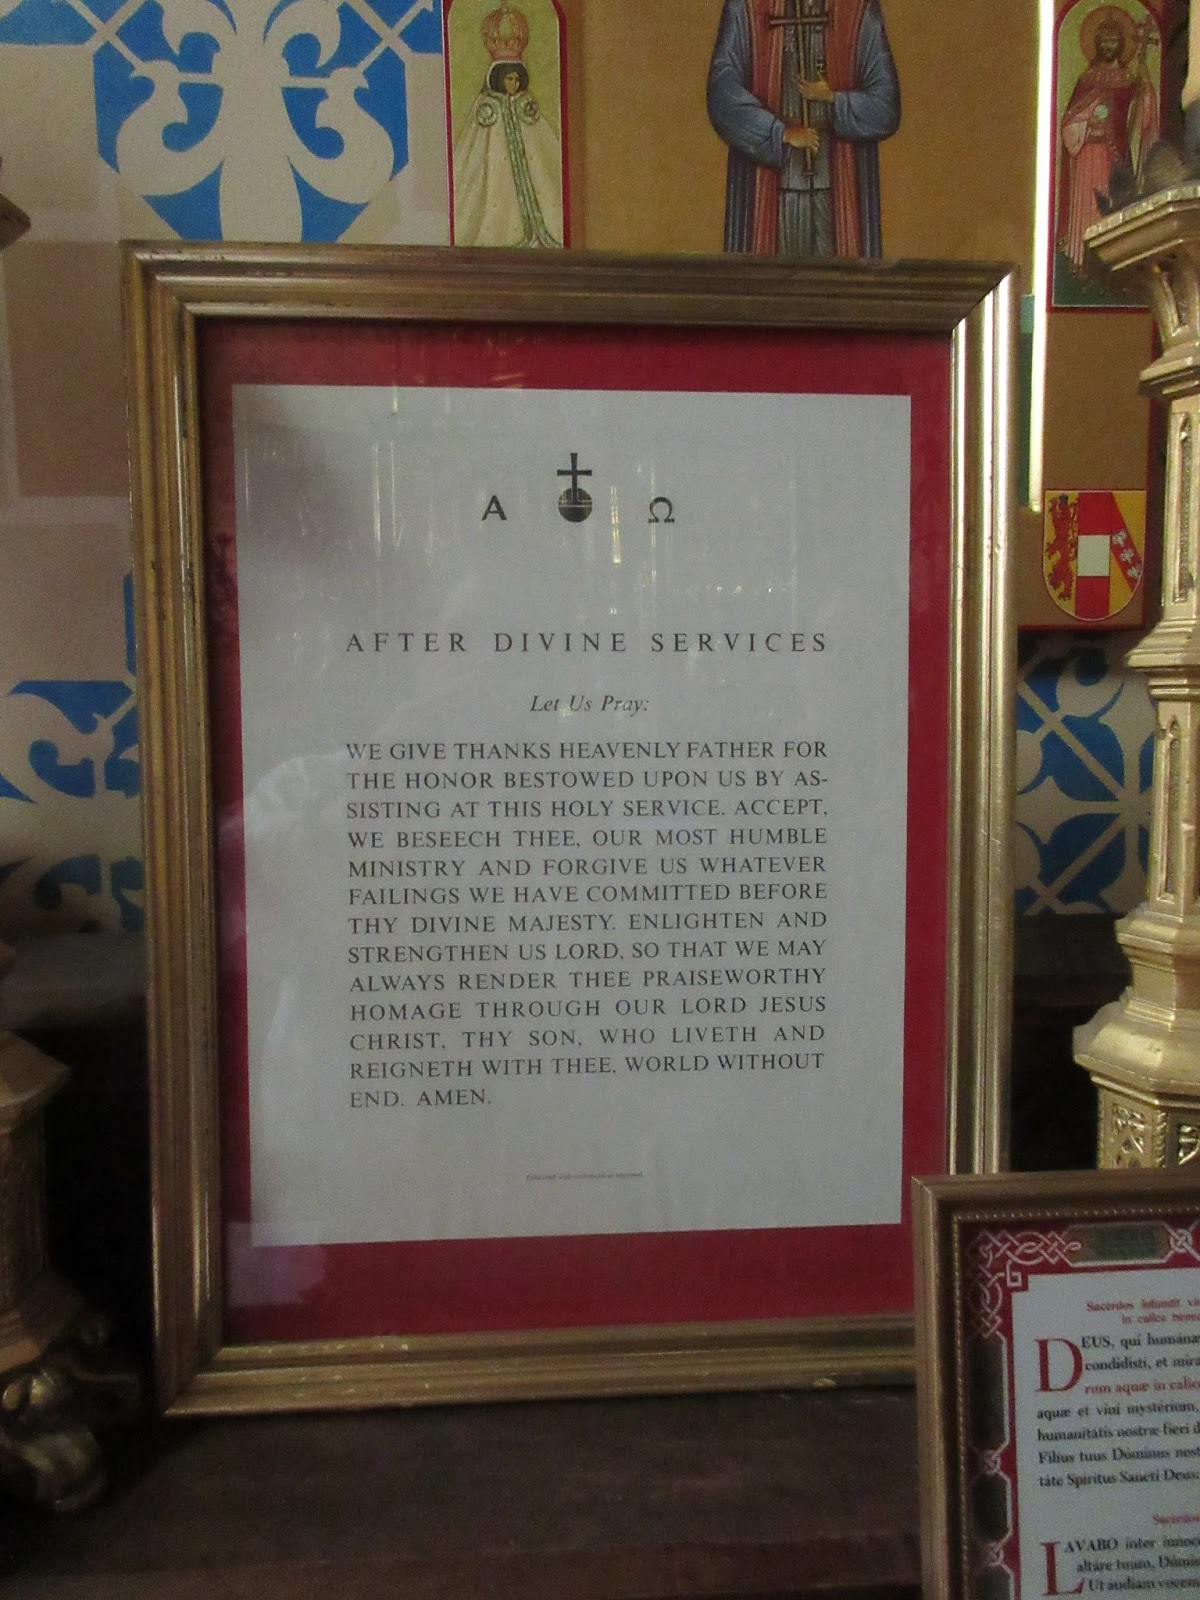 New liturgical movement perfect prayers for before and after the said that this was his favorite place to offer a morning private mass and that he and other canons often used the prayers on either side of the altar altavistaventures Images